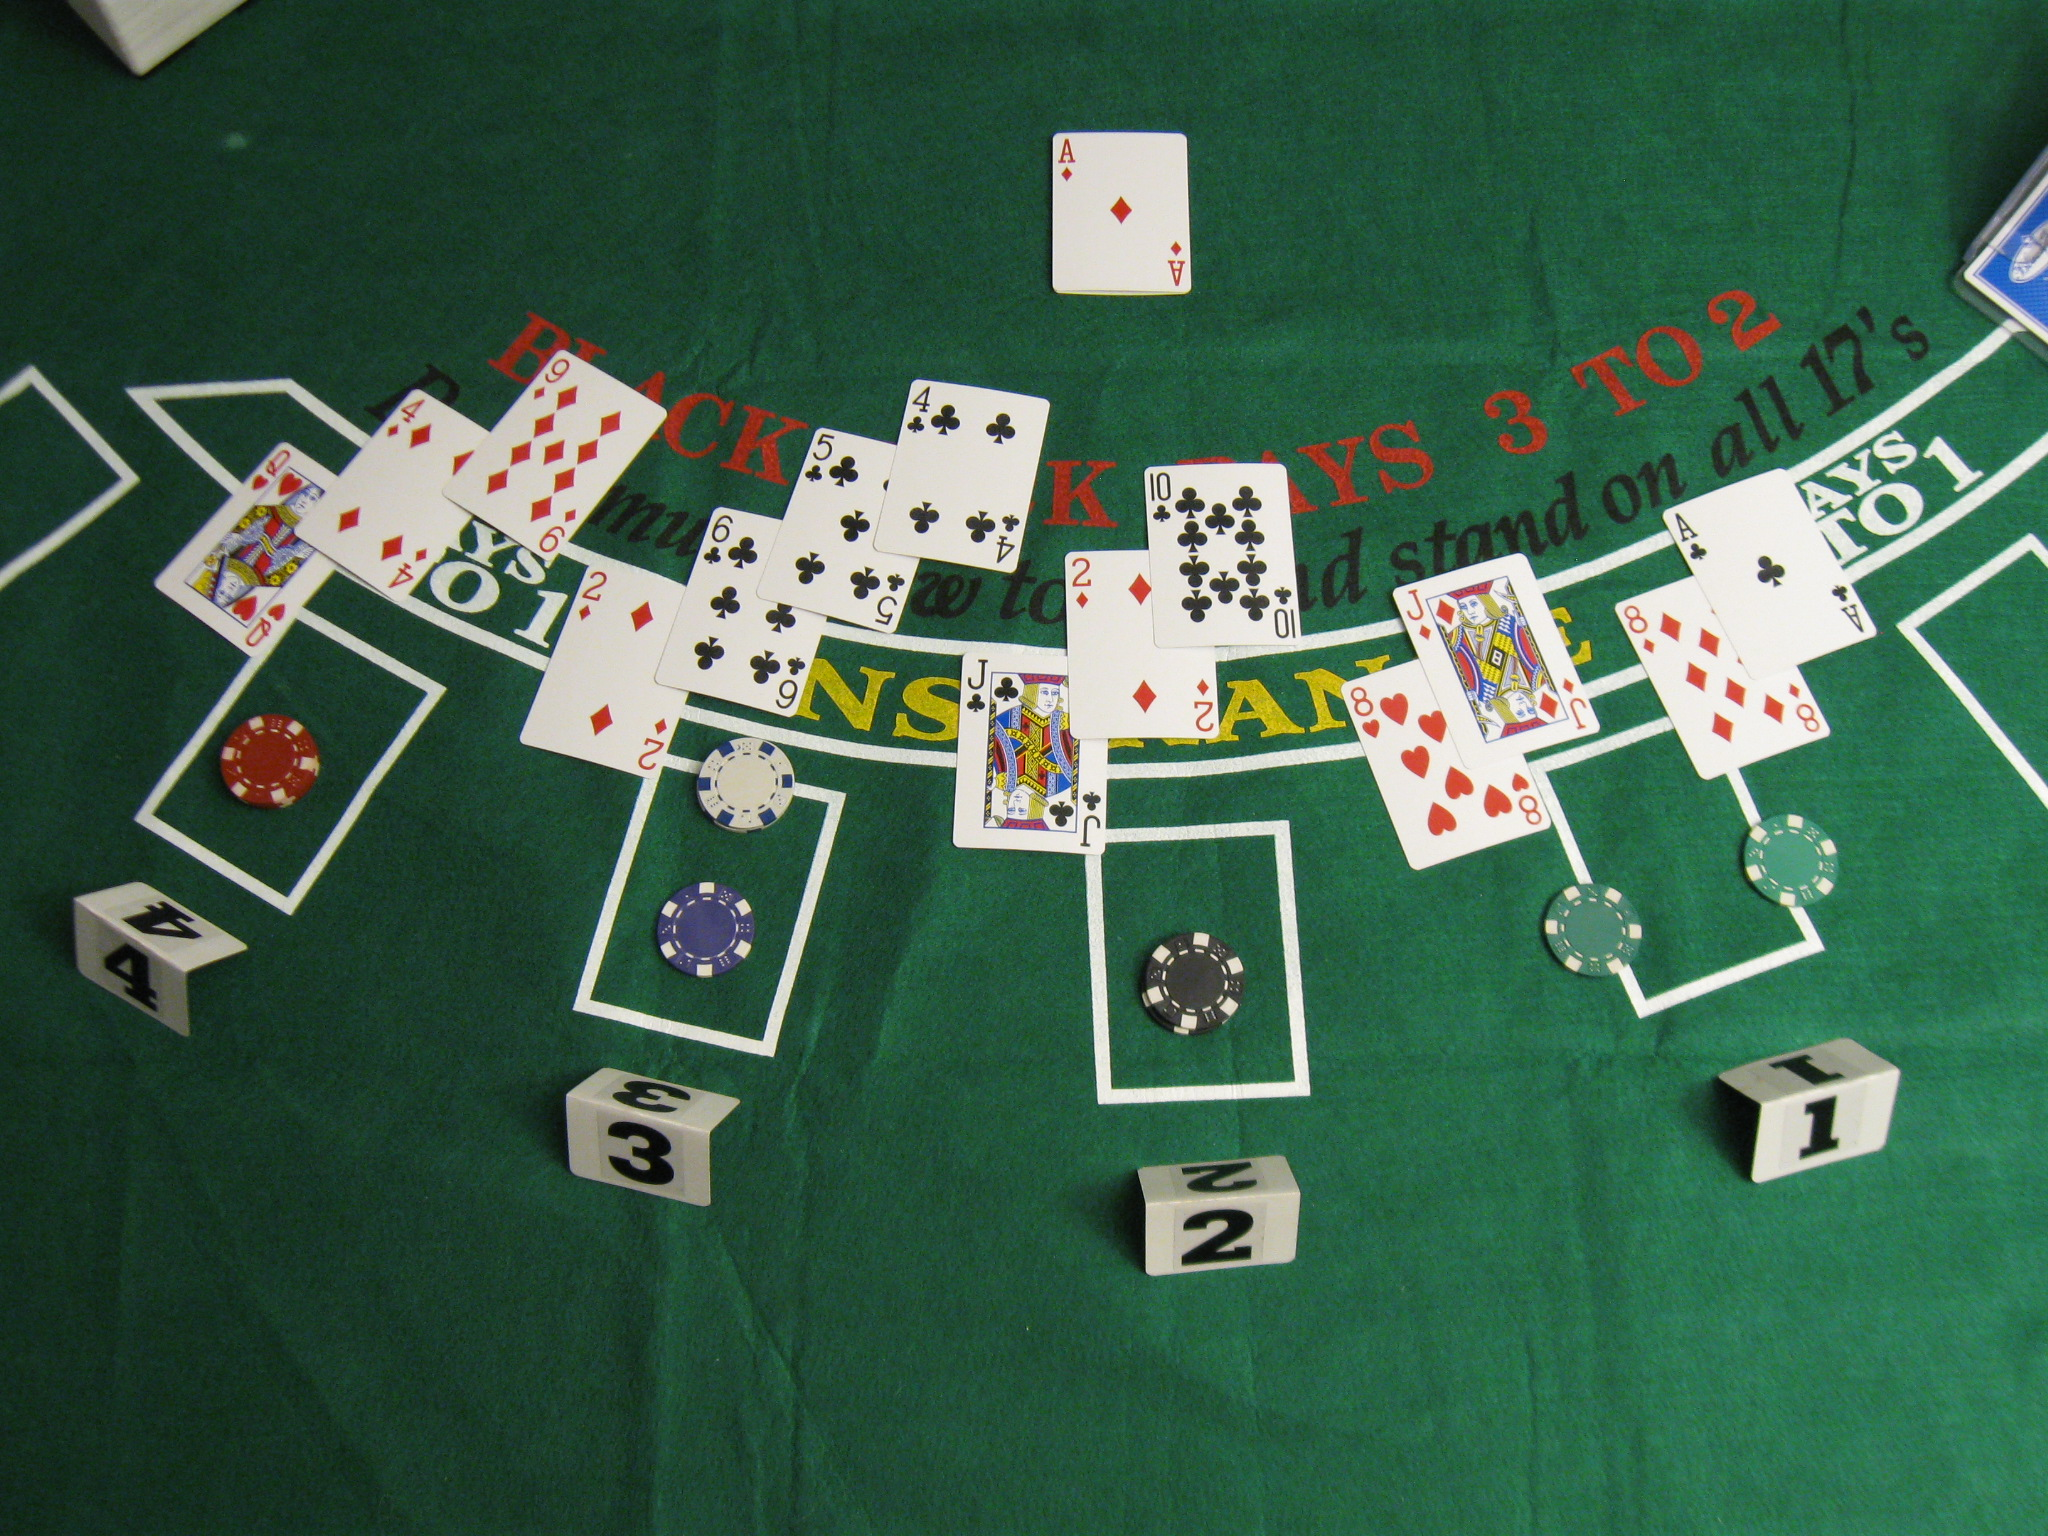 blackjack-paid-3-21-11-16